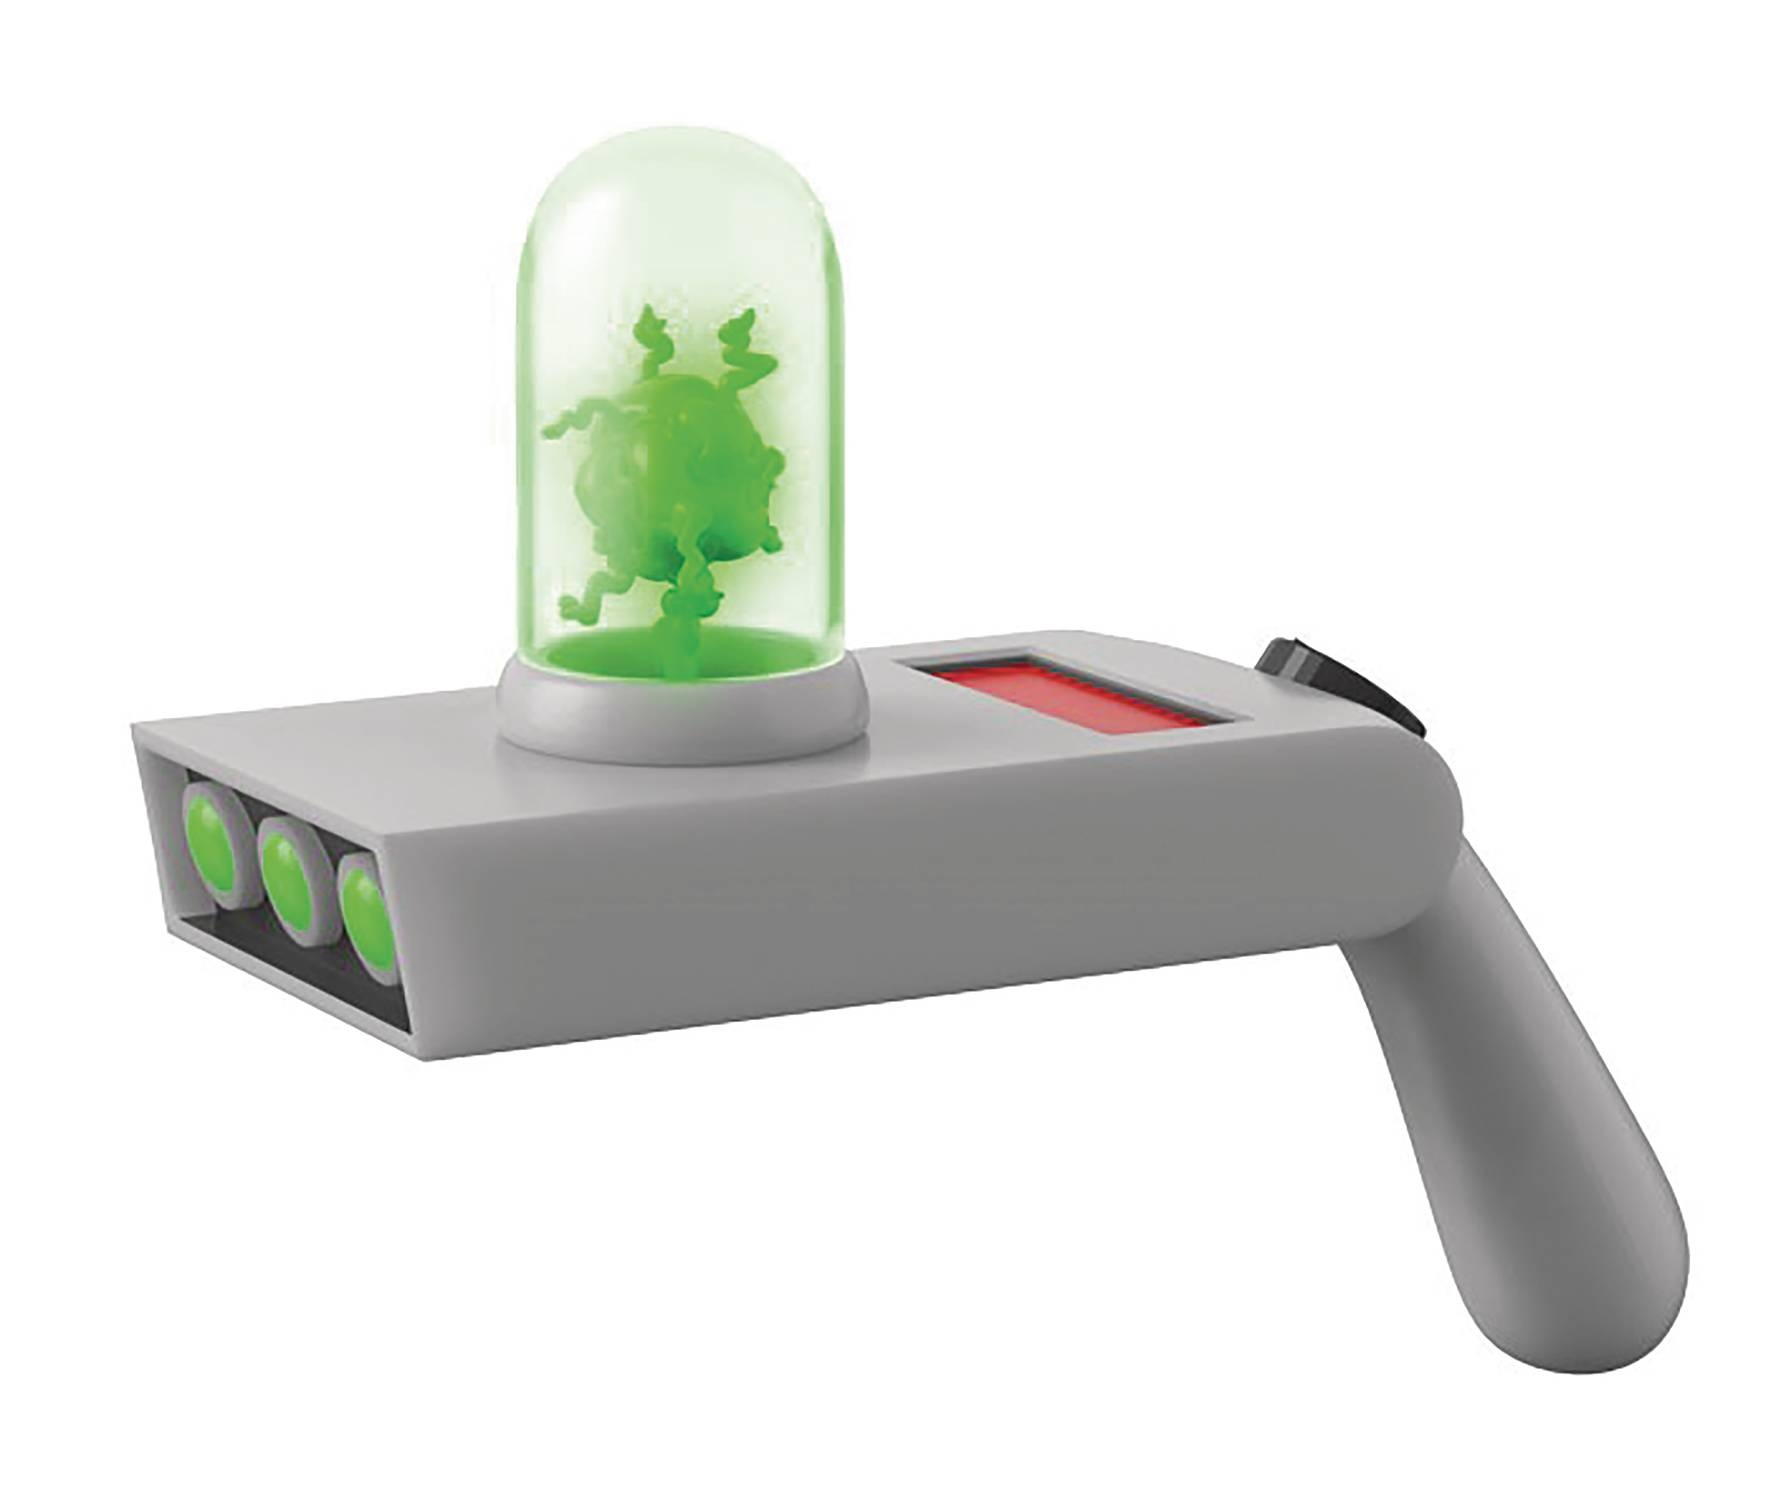 RICK & MORTY PORTAL GUN ELECTRONIC REPLICA